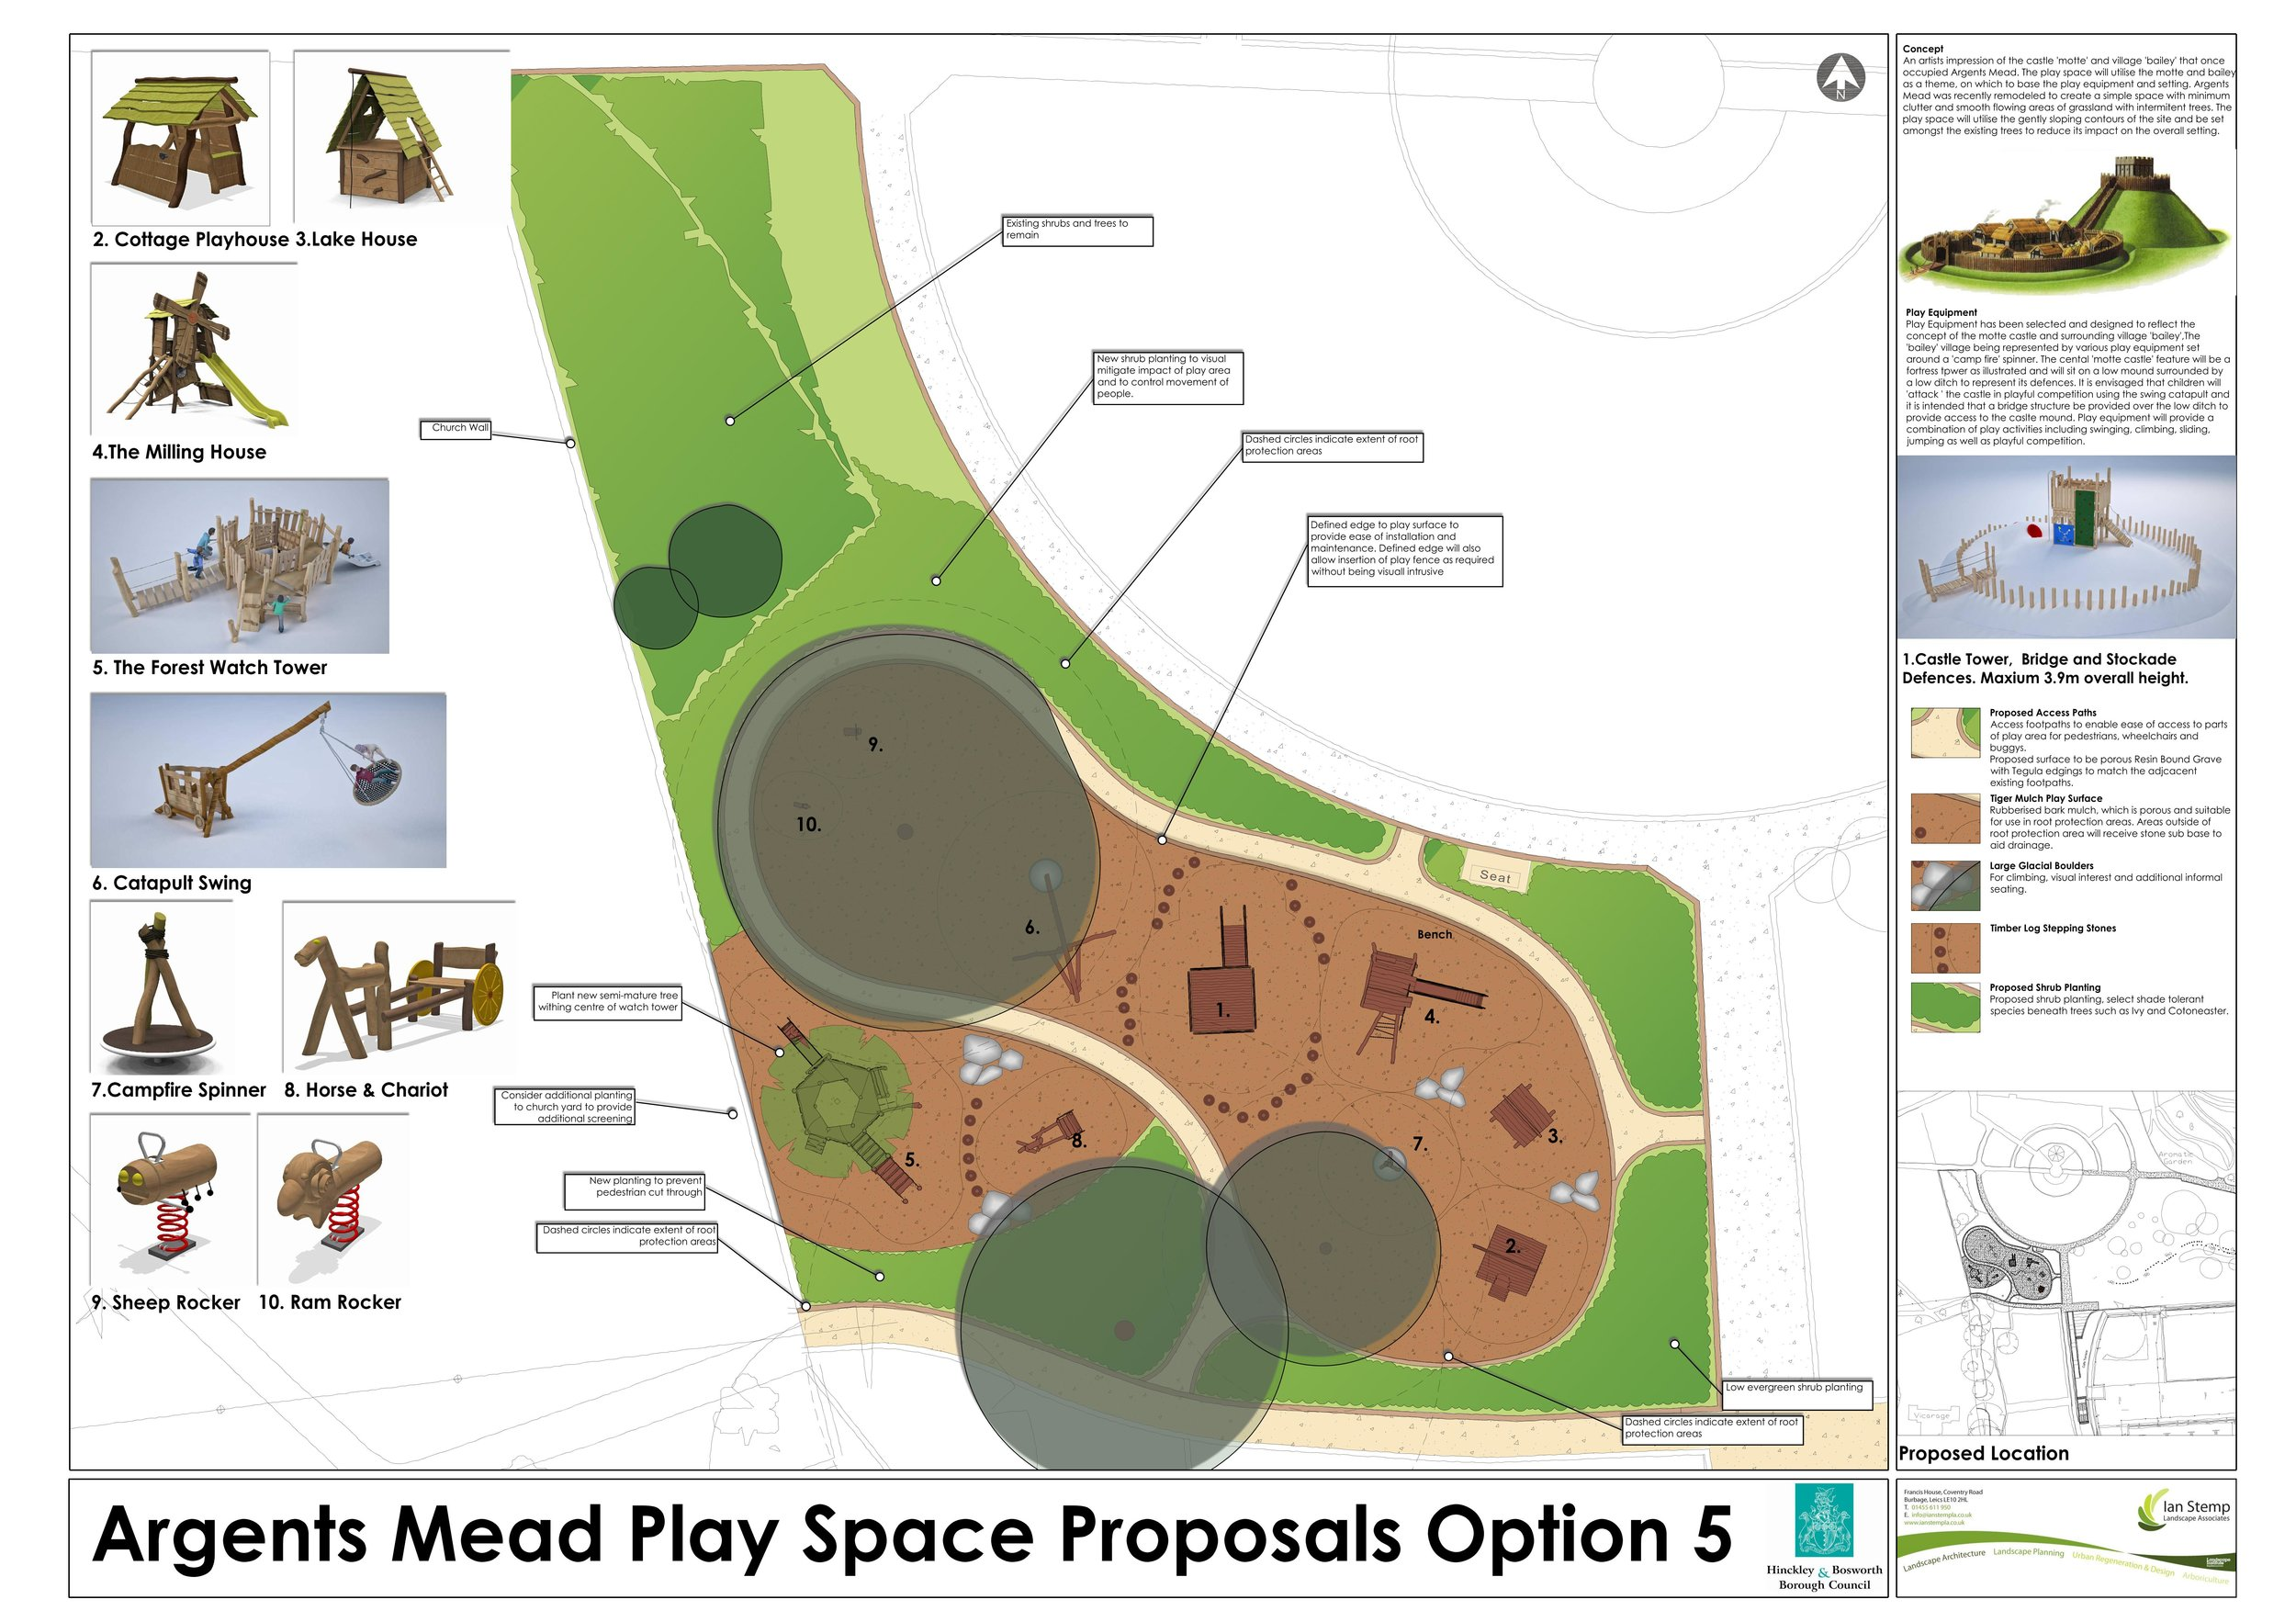 Argents Mead Play Space  Option 5 22.04.16_Page_1.jpeg